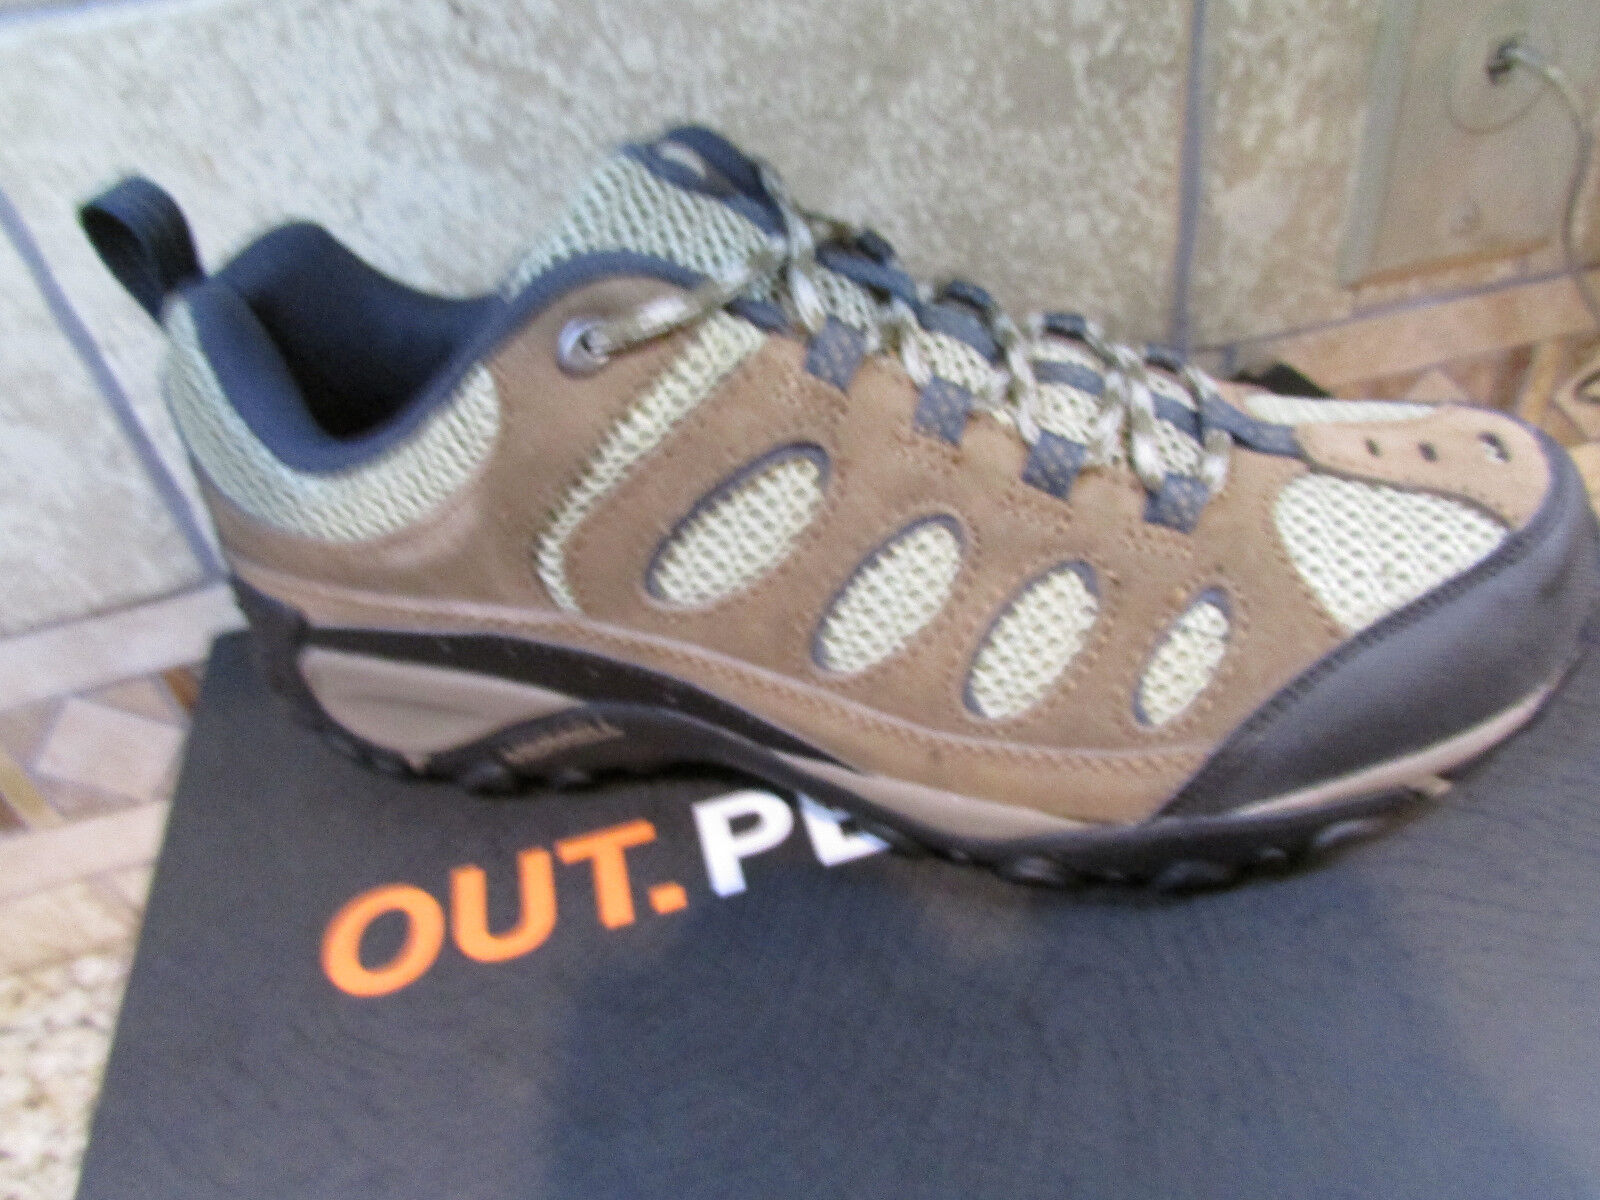 Scarpe casual da uomo  NEW MERRELL FARADAY TRAIL HIKING SHOES uomoS 9.5 J276512C STONE/BROWN FREE SHIP